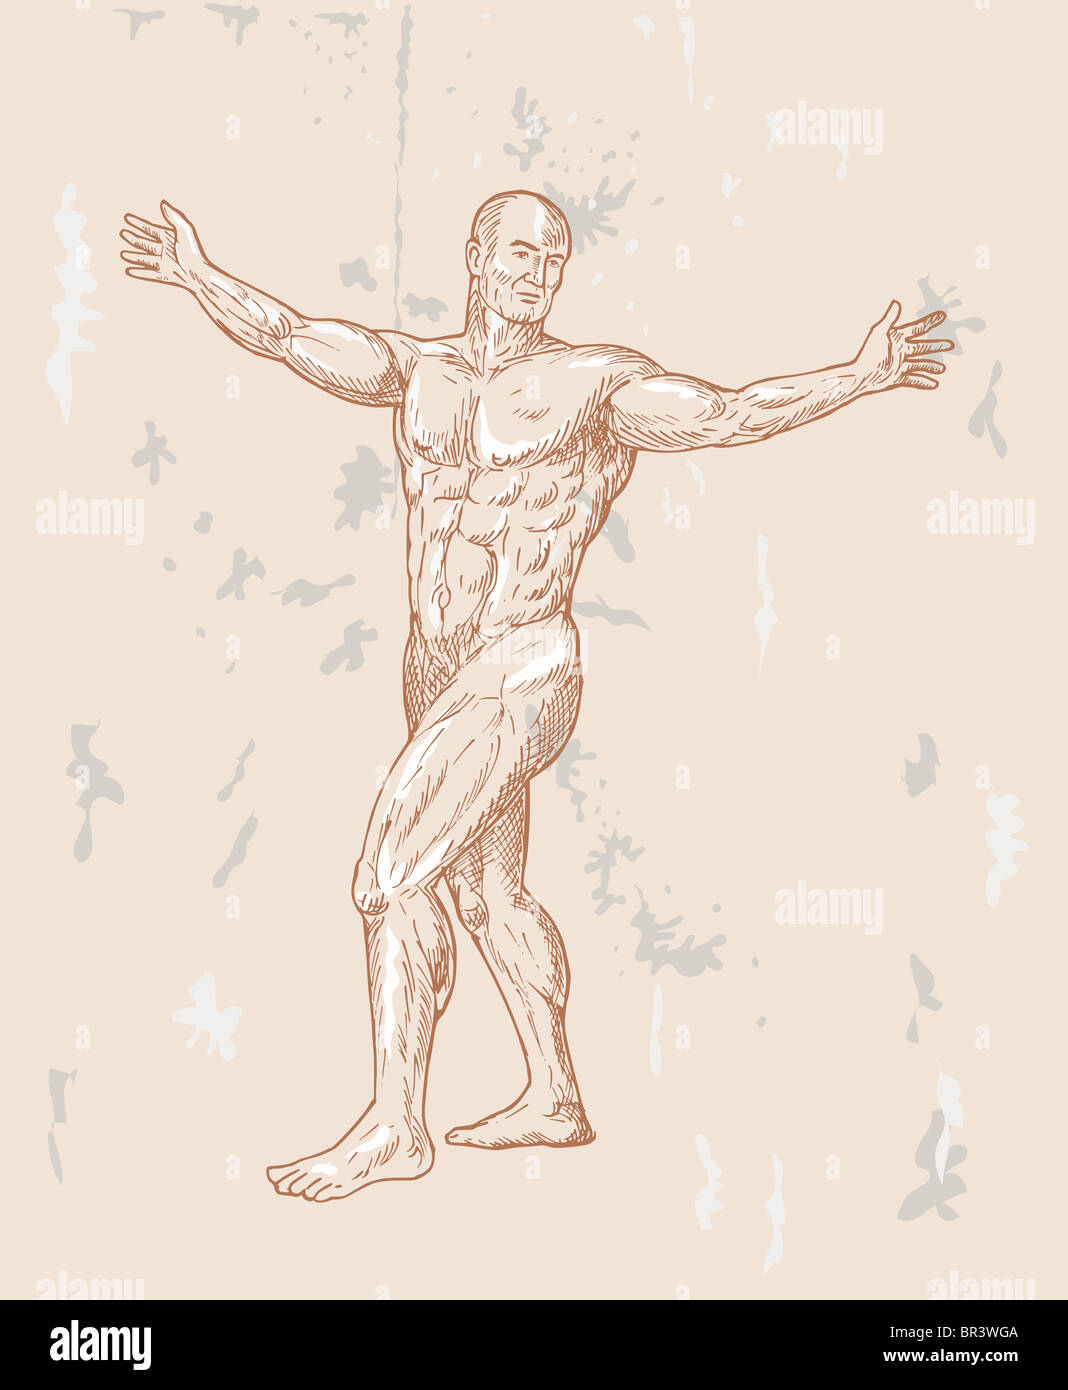 Hand Sketched Illustration Of The Male Human Anatomy Done In Stock